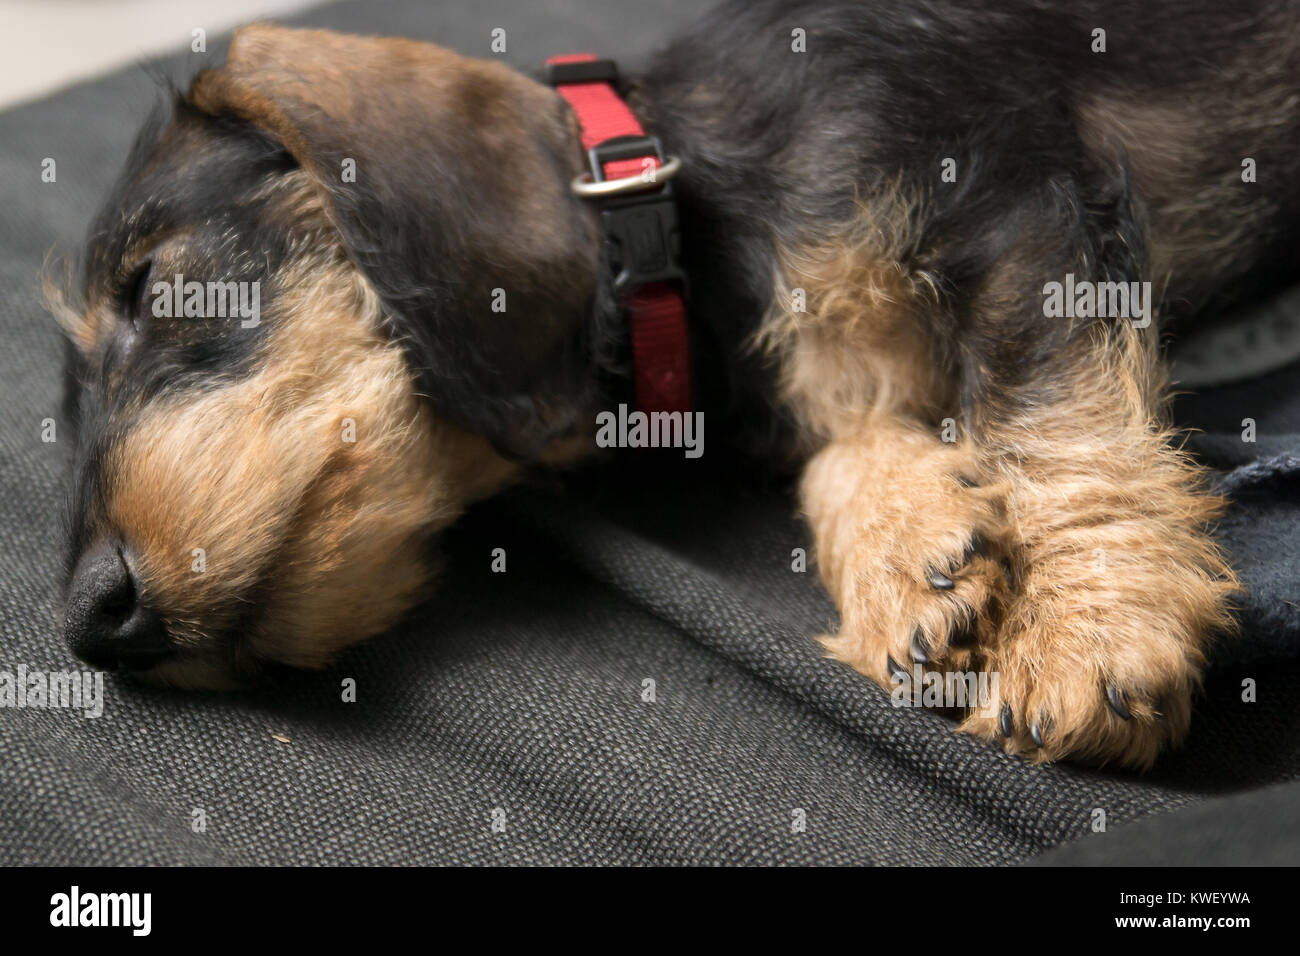 Wire Haired Miniature Dachshund Puppy Rudi Sleeping On A Grey Blanket Stock Photo Alamy